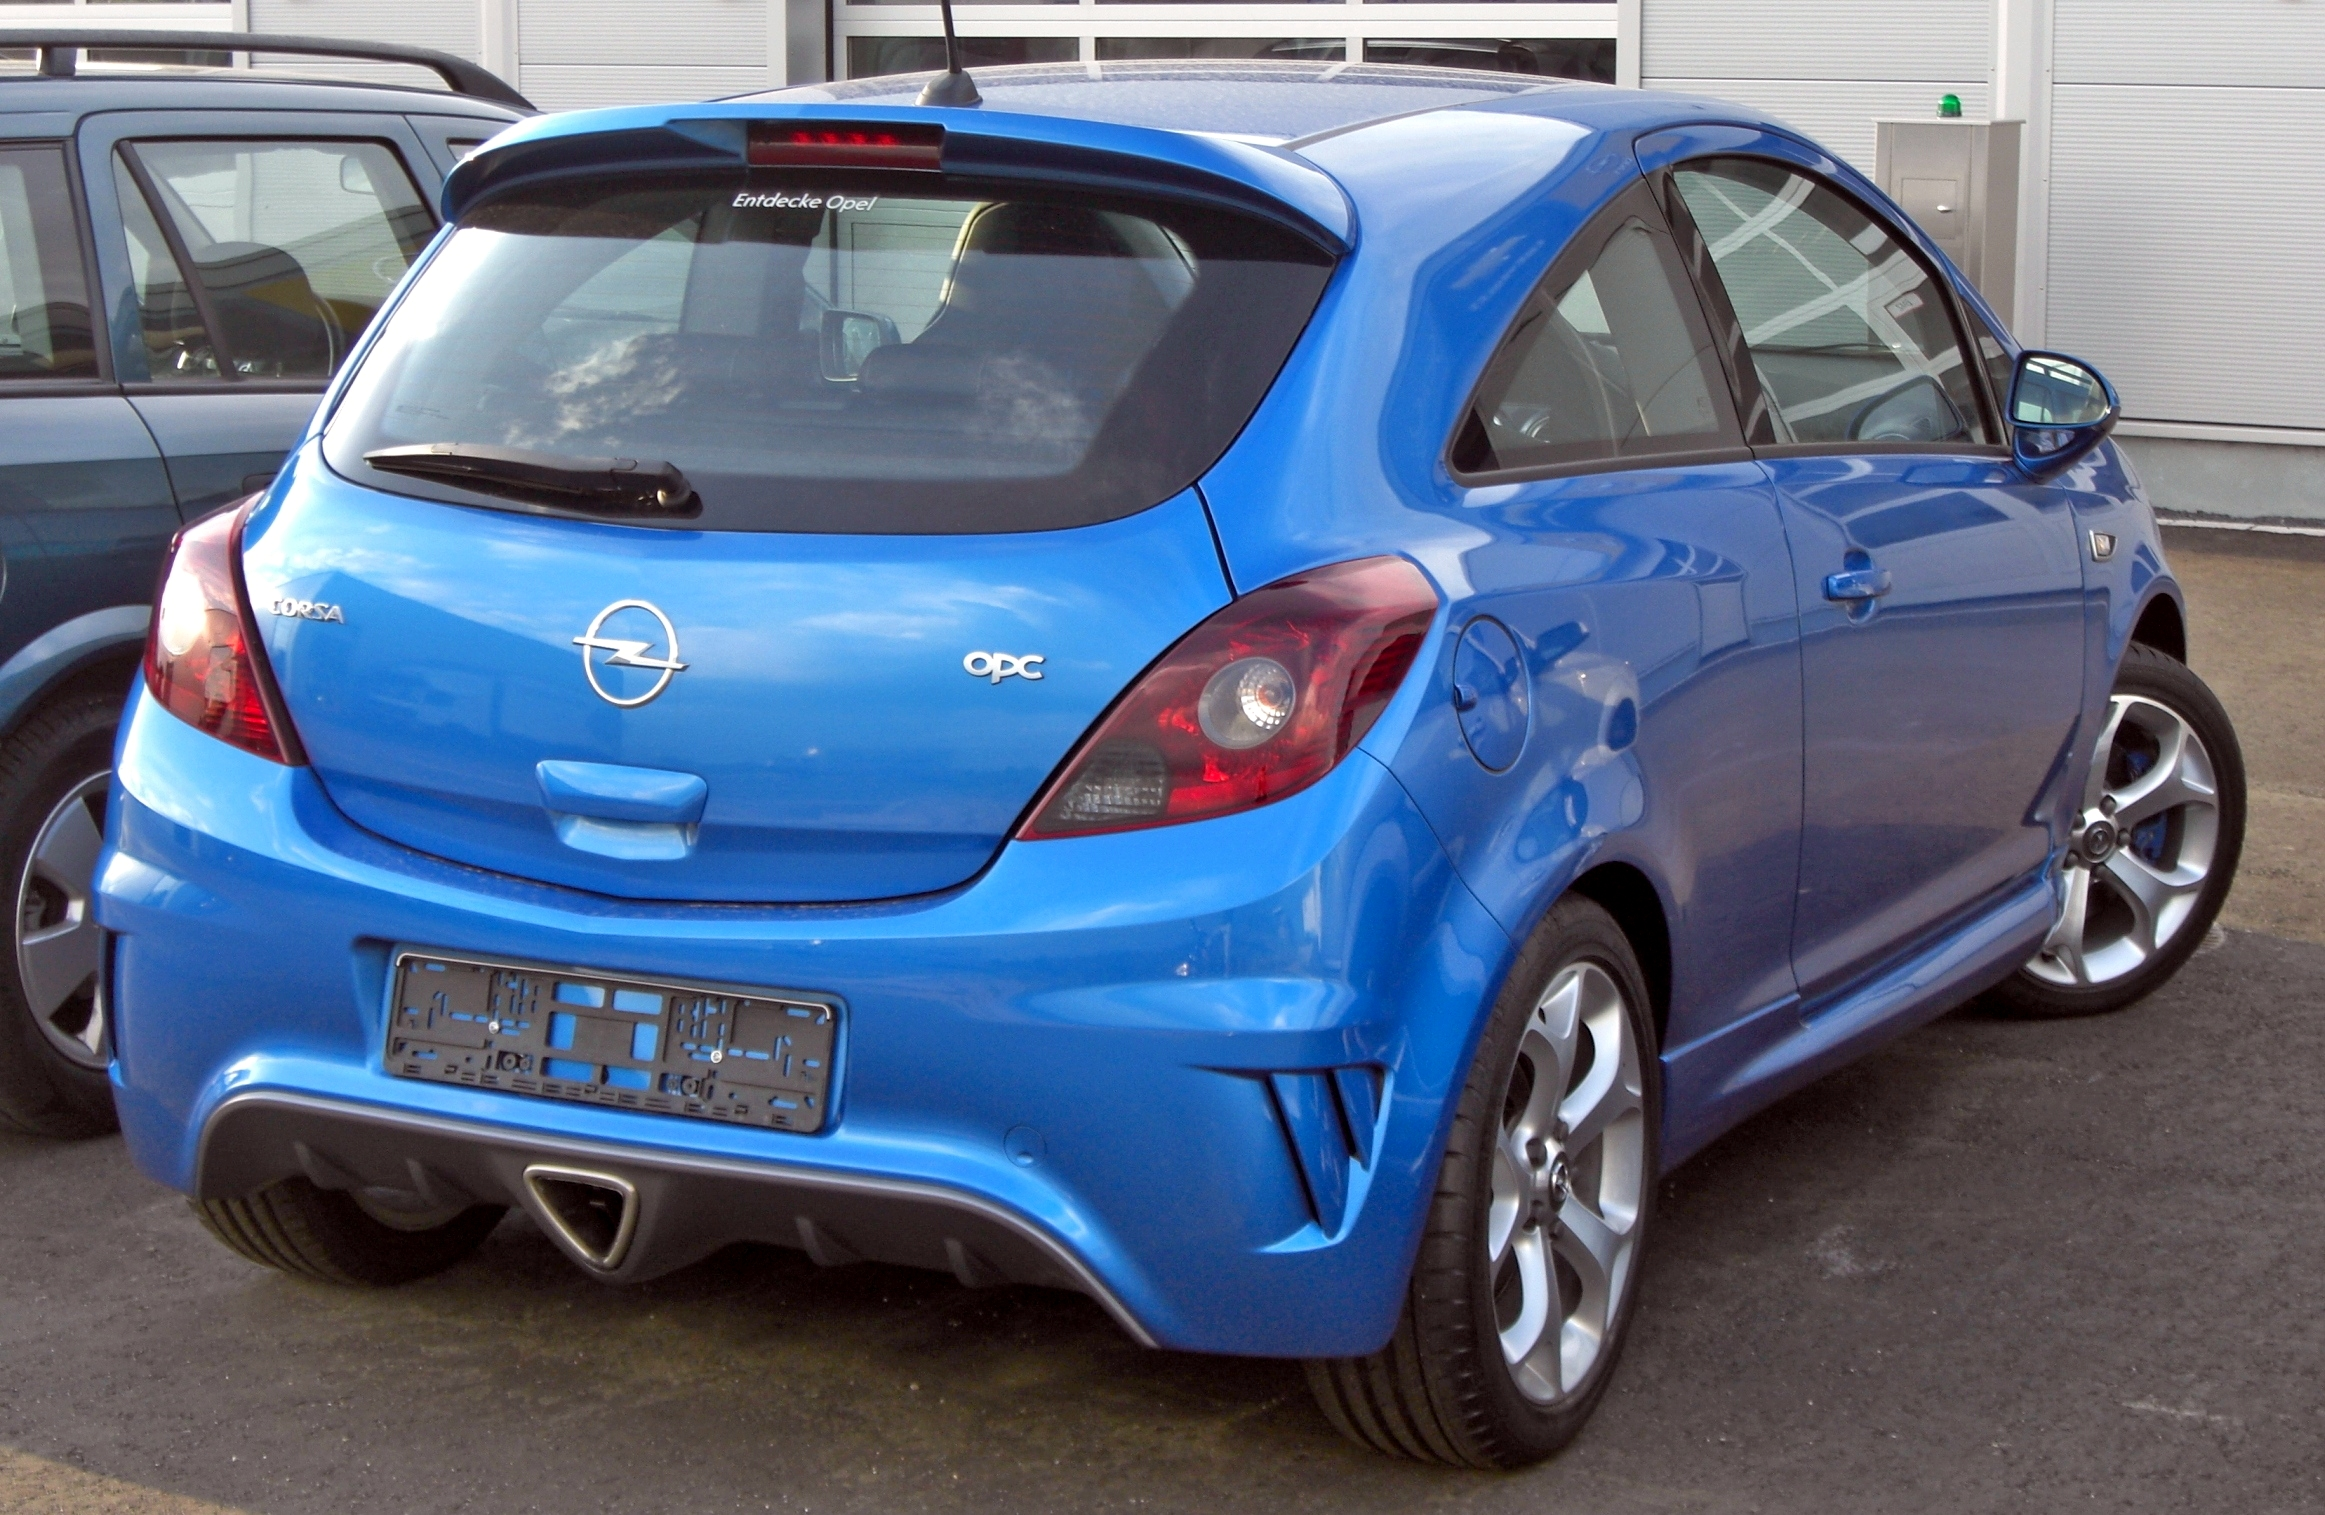 File Opel Corsa D Opc Rear Jpg Wikimedia Commons